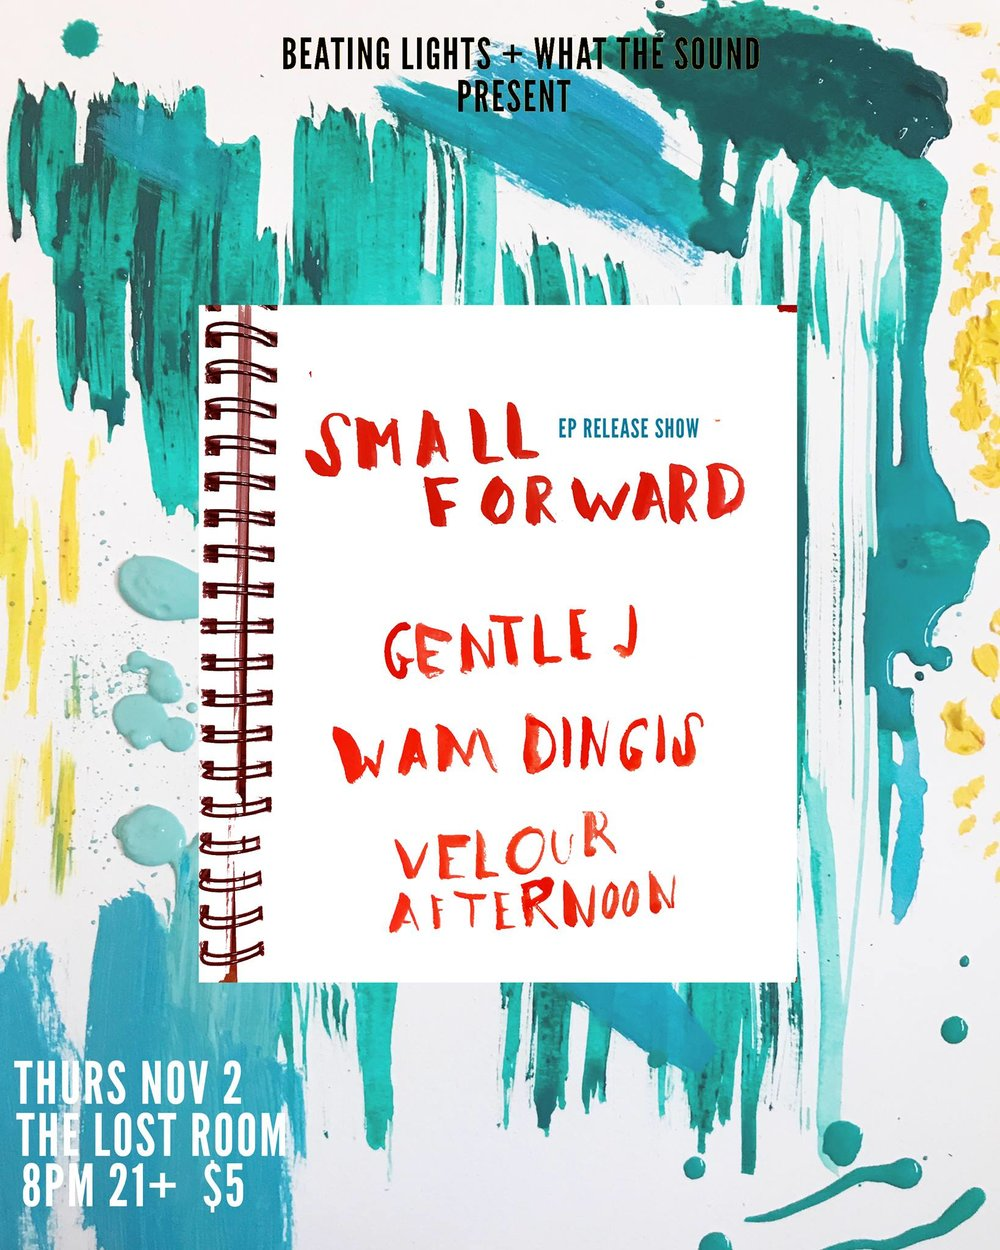 SMALL FORWARD / GENTLE J / WAM DINGIS / VELOUR AFTERNOON - Artwork by Shab Ferdowsi November 2nd @ The Lost Room$5, 21+